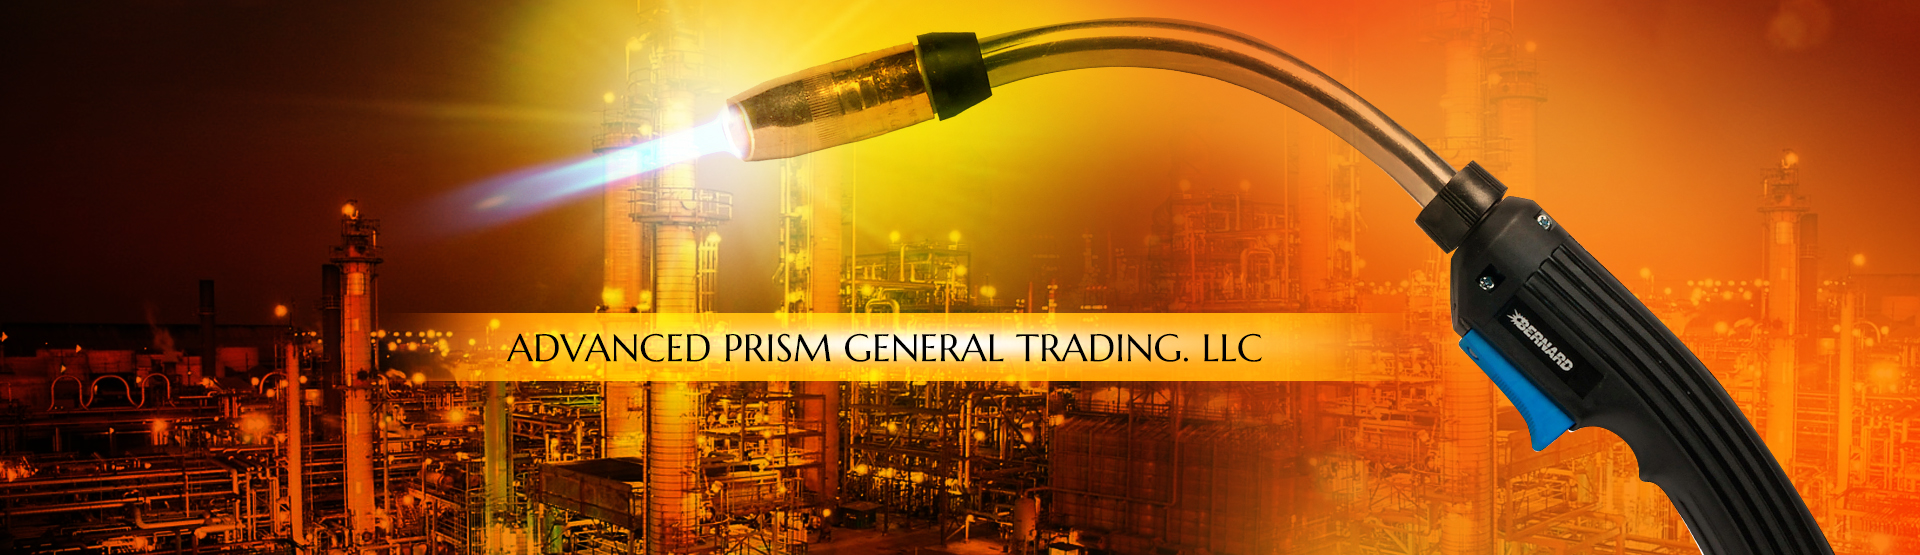 ADVANCED PRISM GENERAL TRADING. LLC